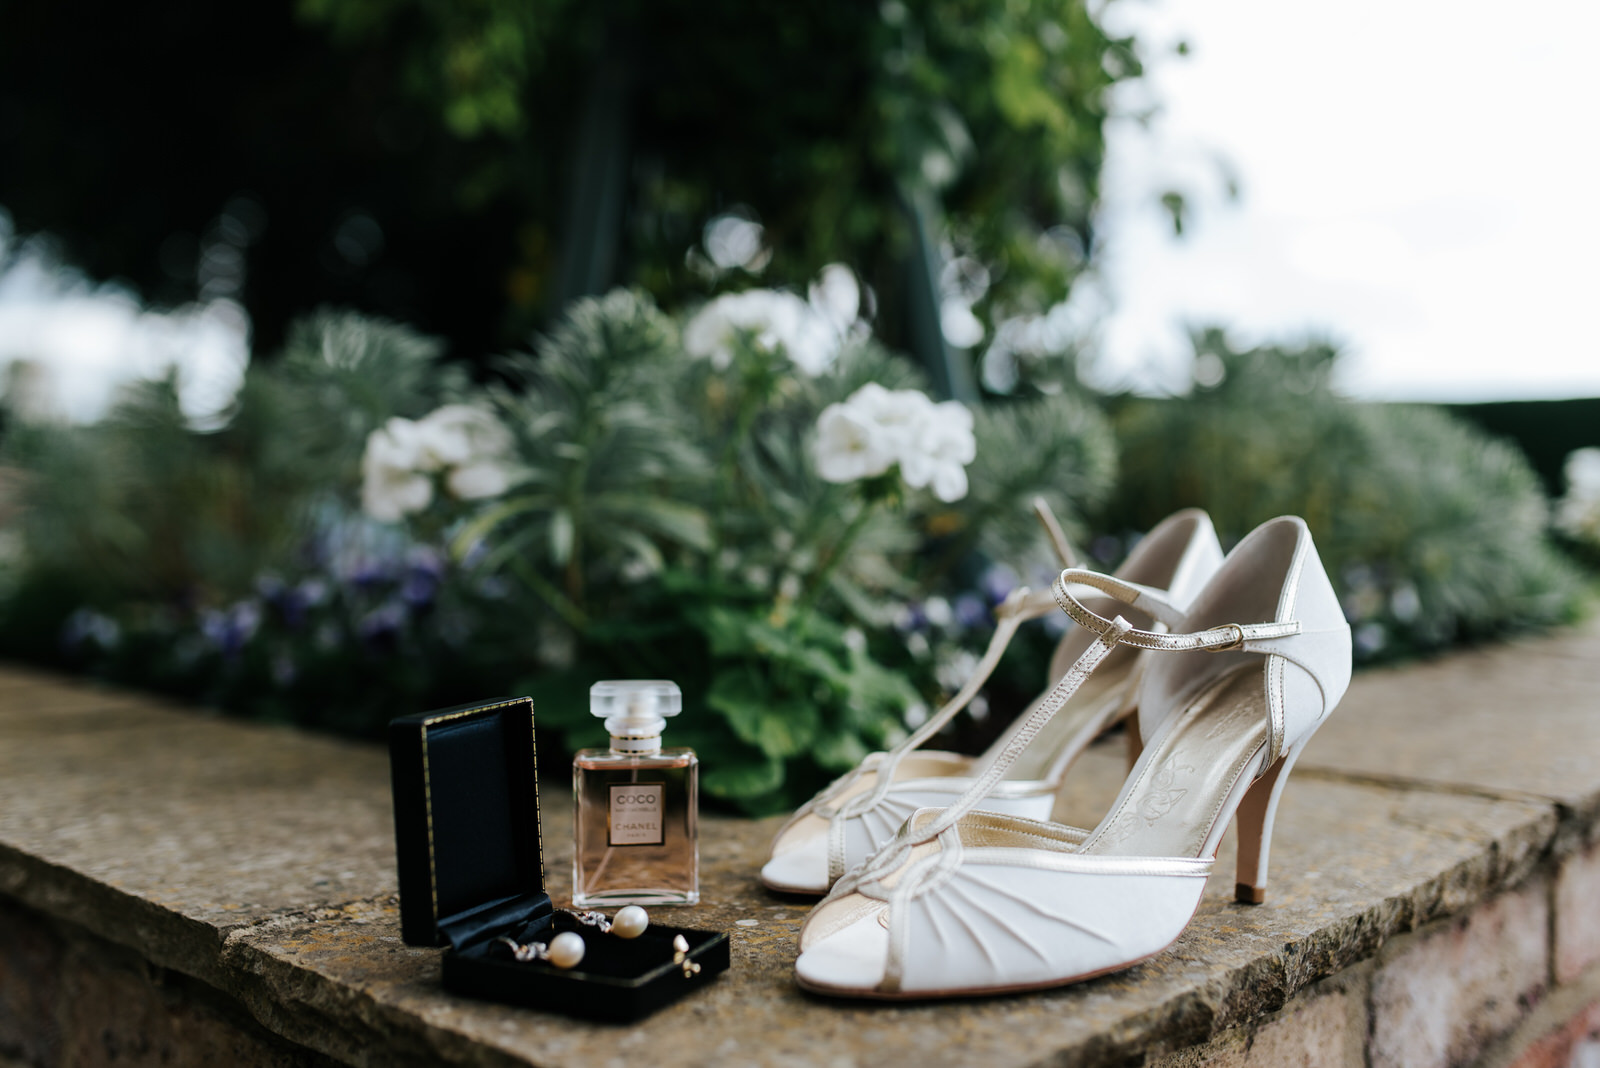 Wedding shoes and details in garden